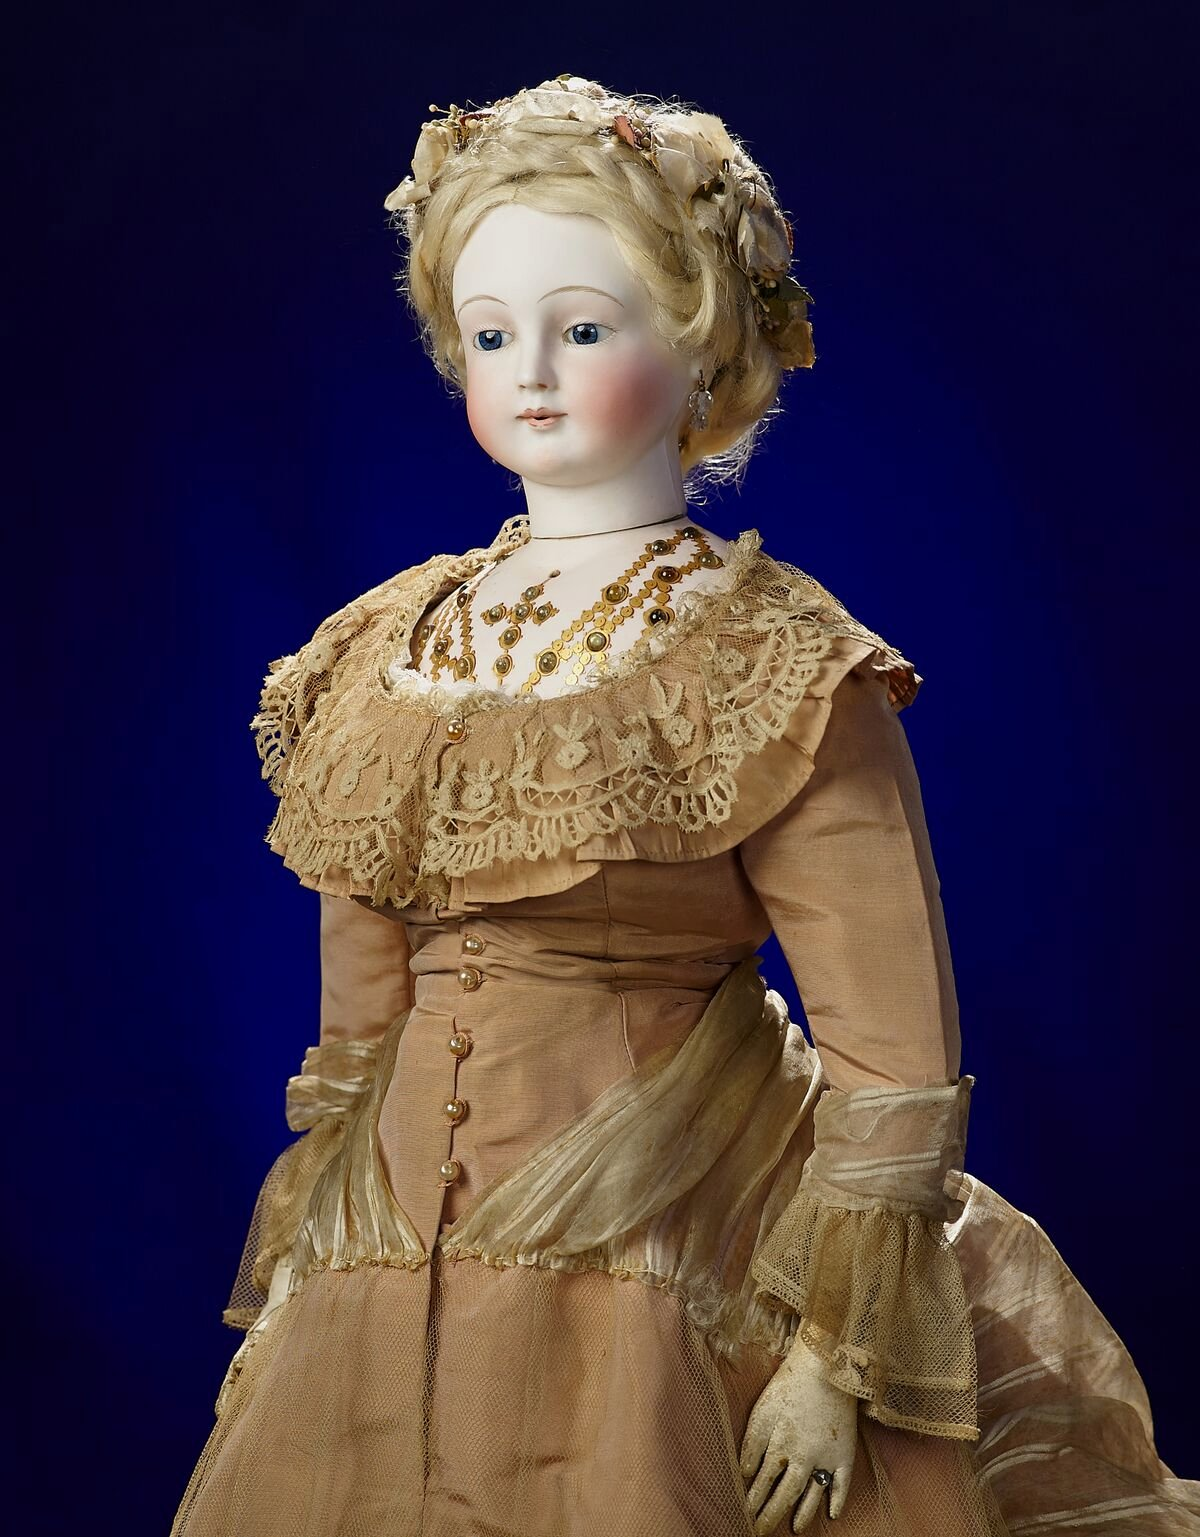 The Rochard Doll - Sold to Carolyn Barry for $333,500 by Theriault's - Now in the Barry Art Museum's collection.